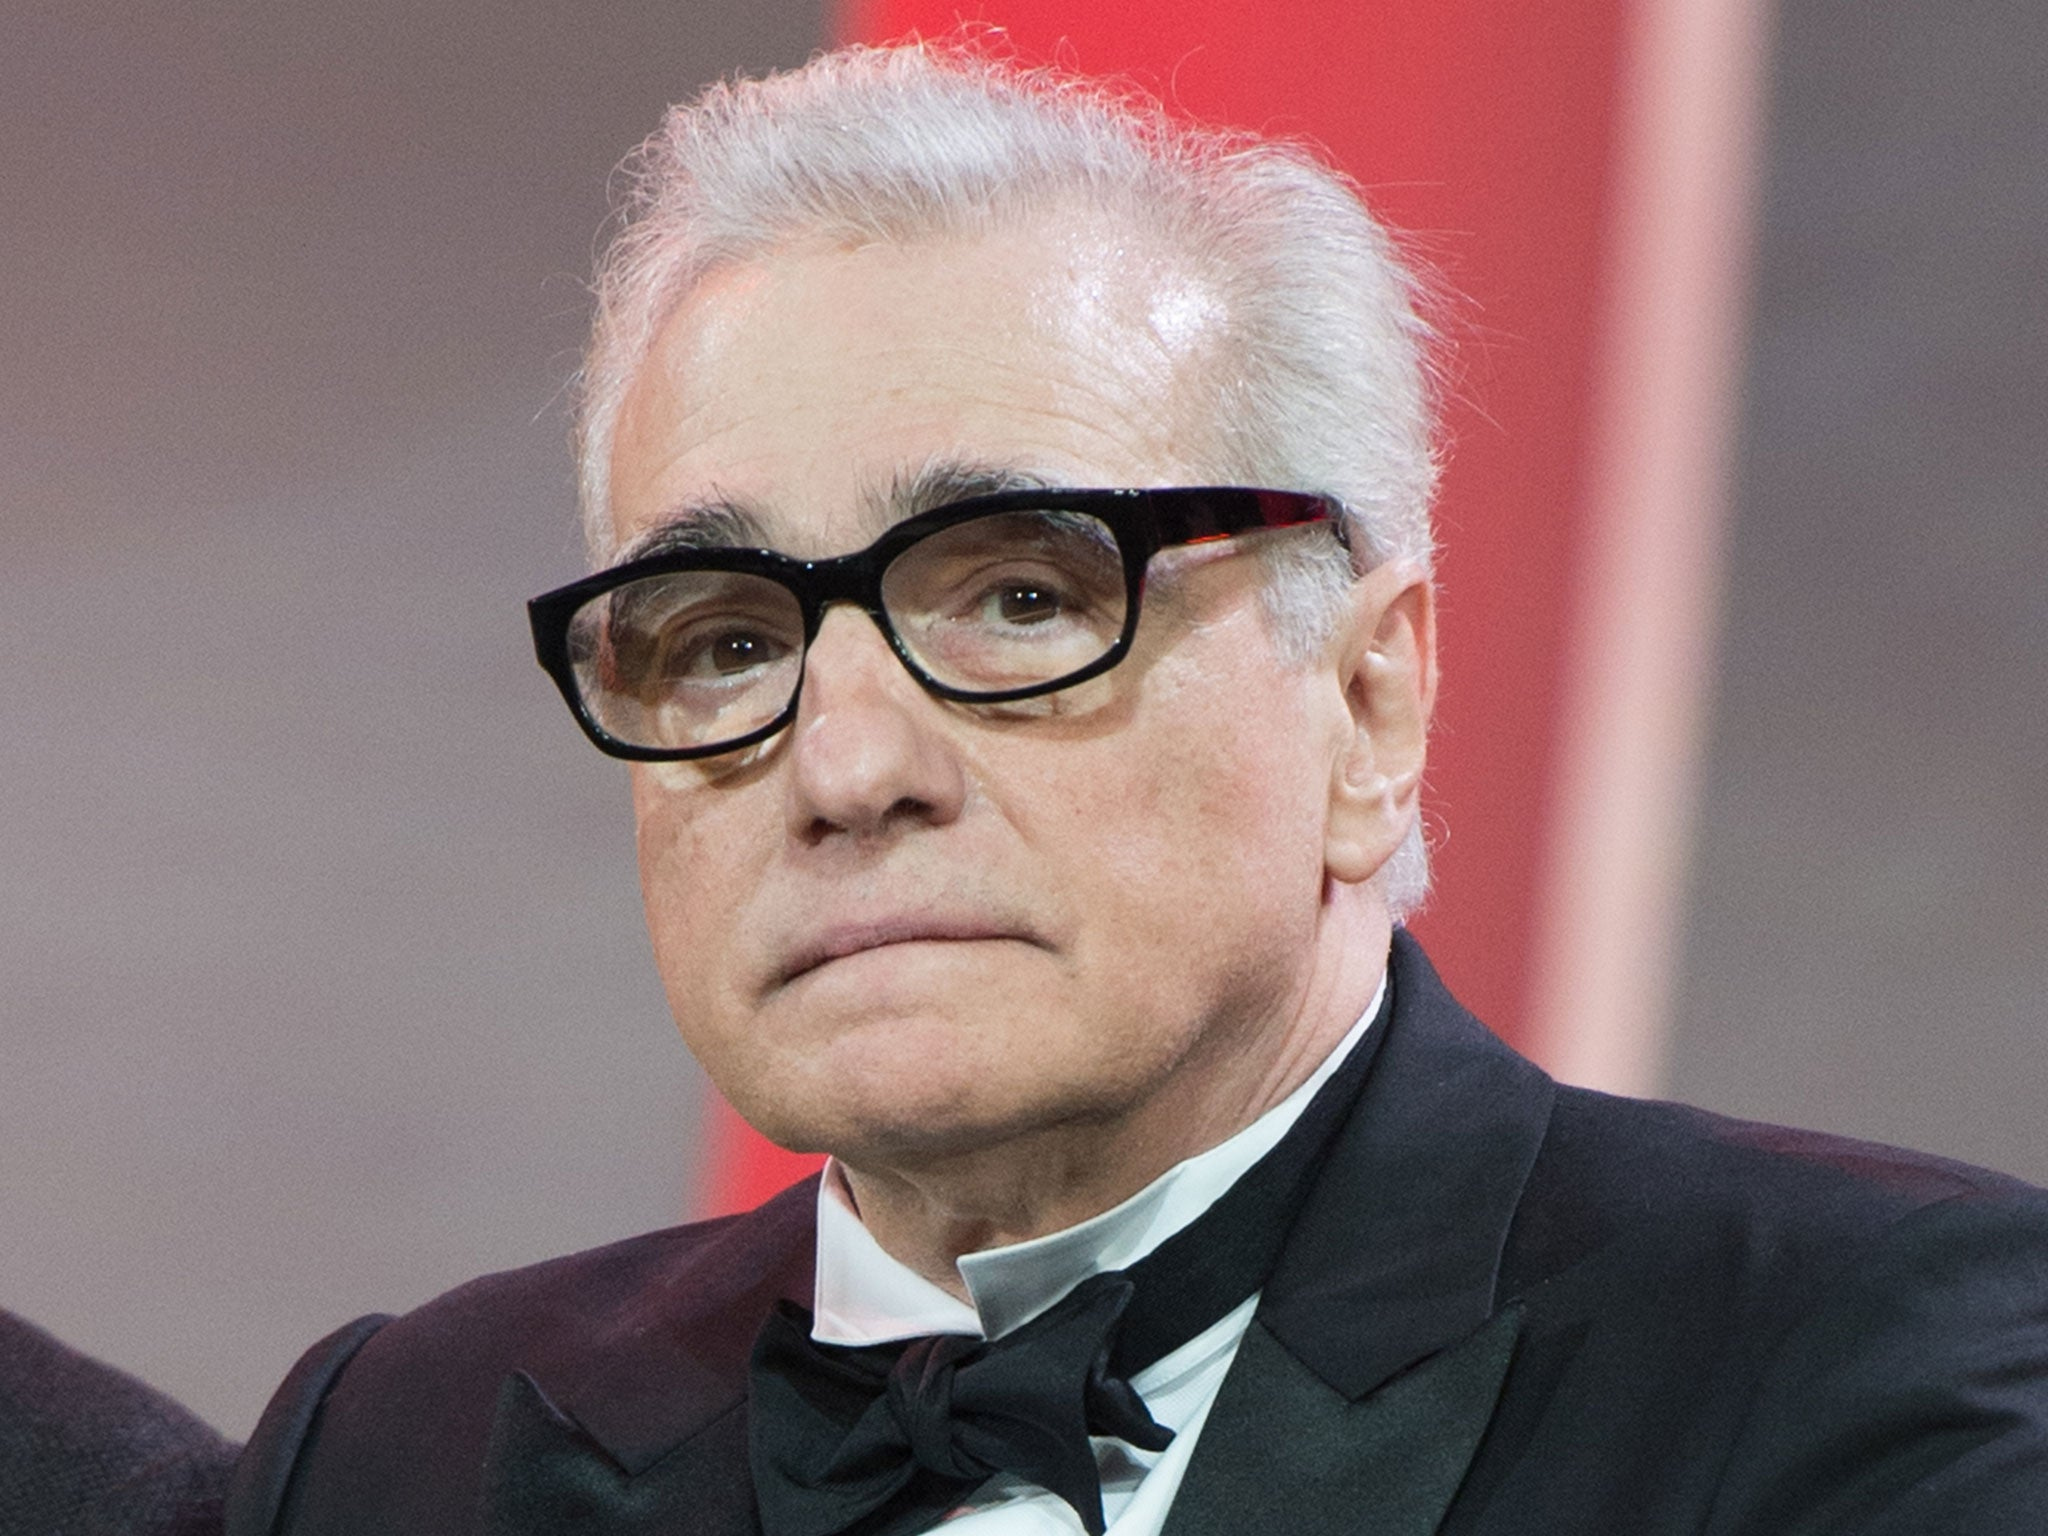 Martin Scorsese 'in shock' after death on set of new film Silence ... Martinscorsese